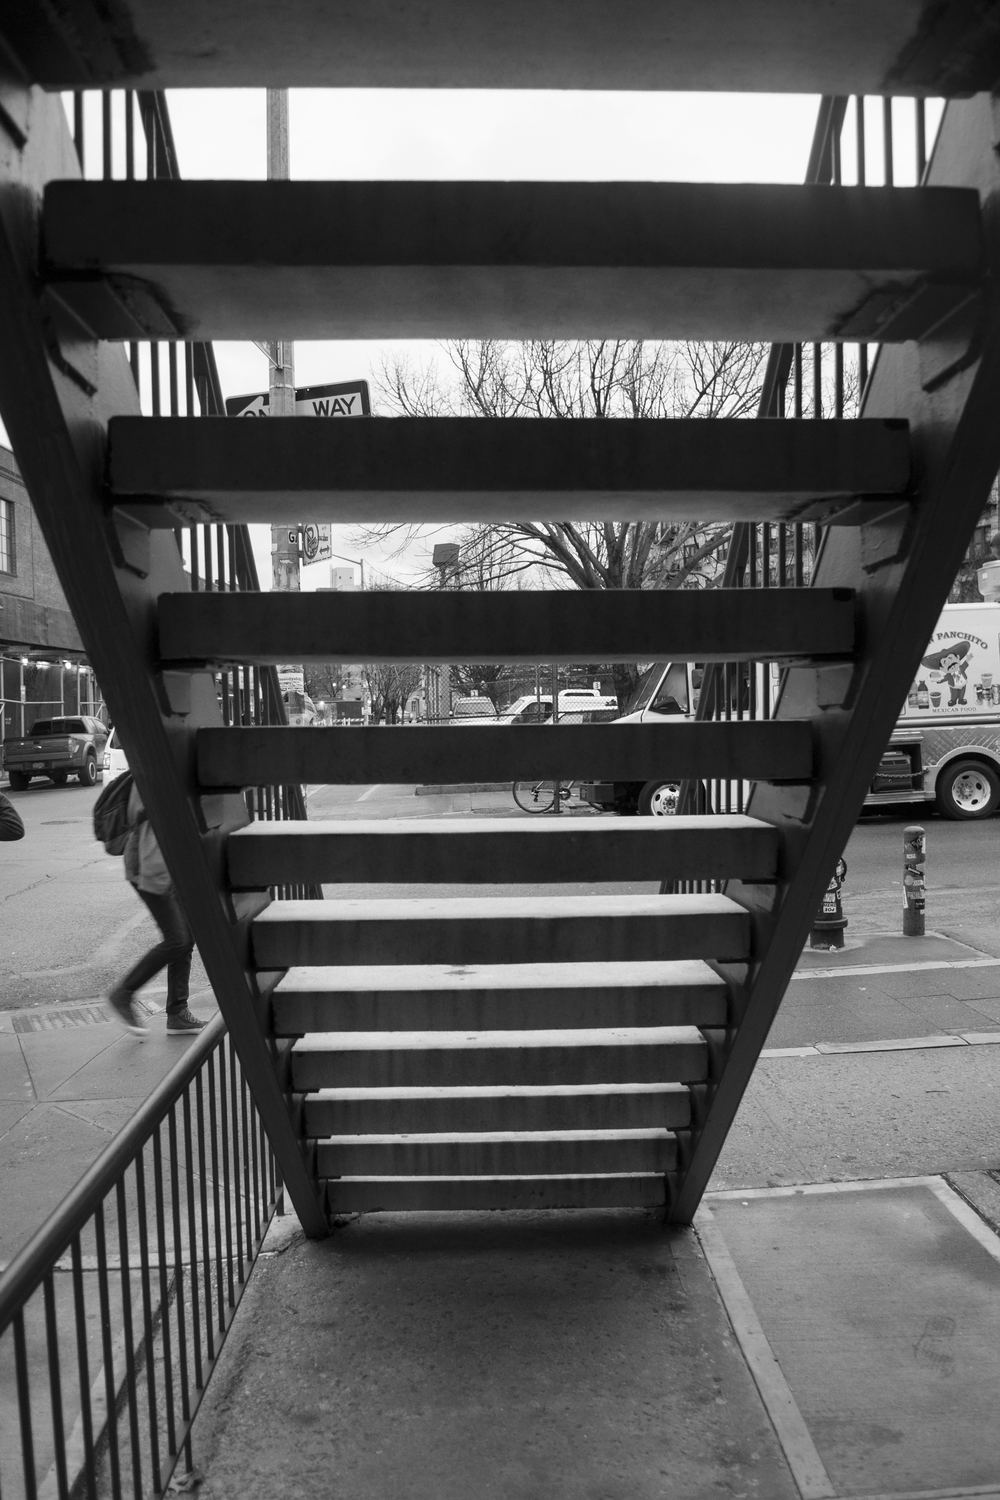 Day 56 - Front Stairs